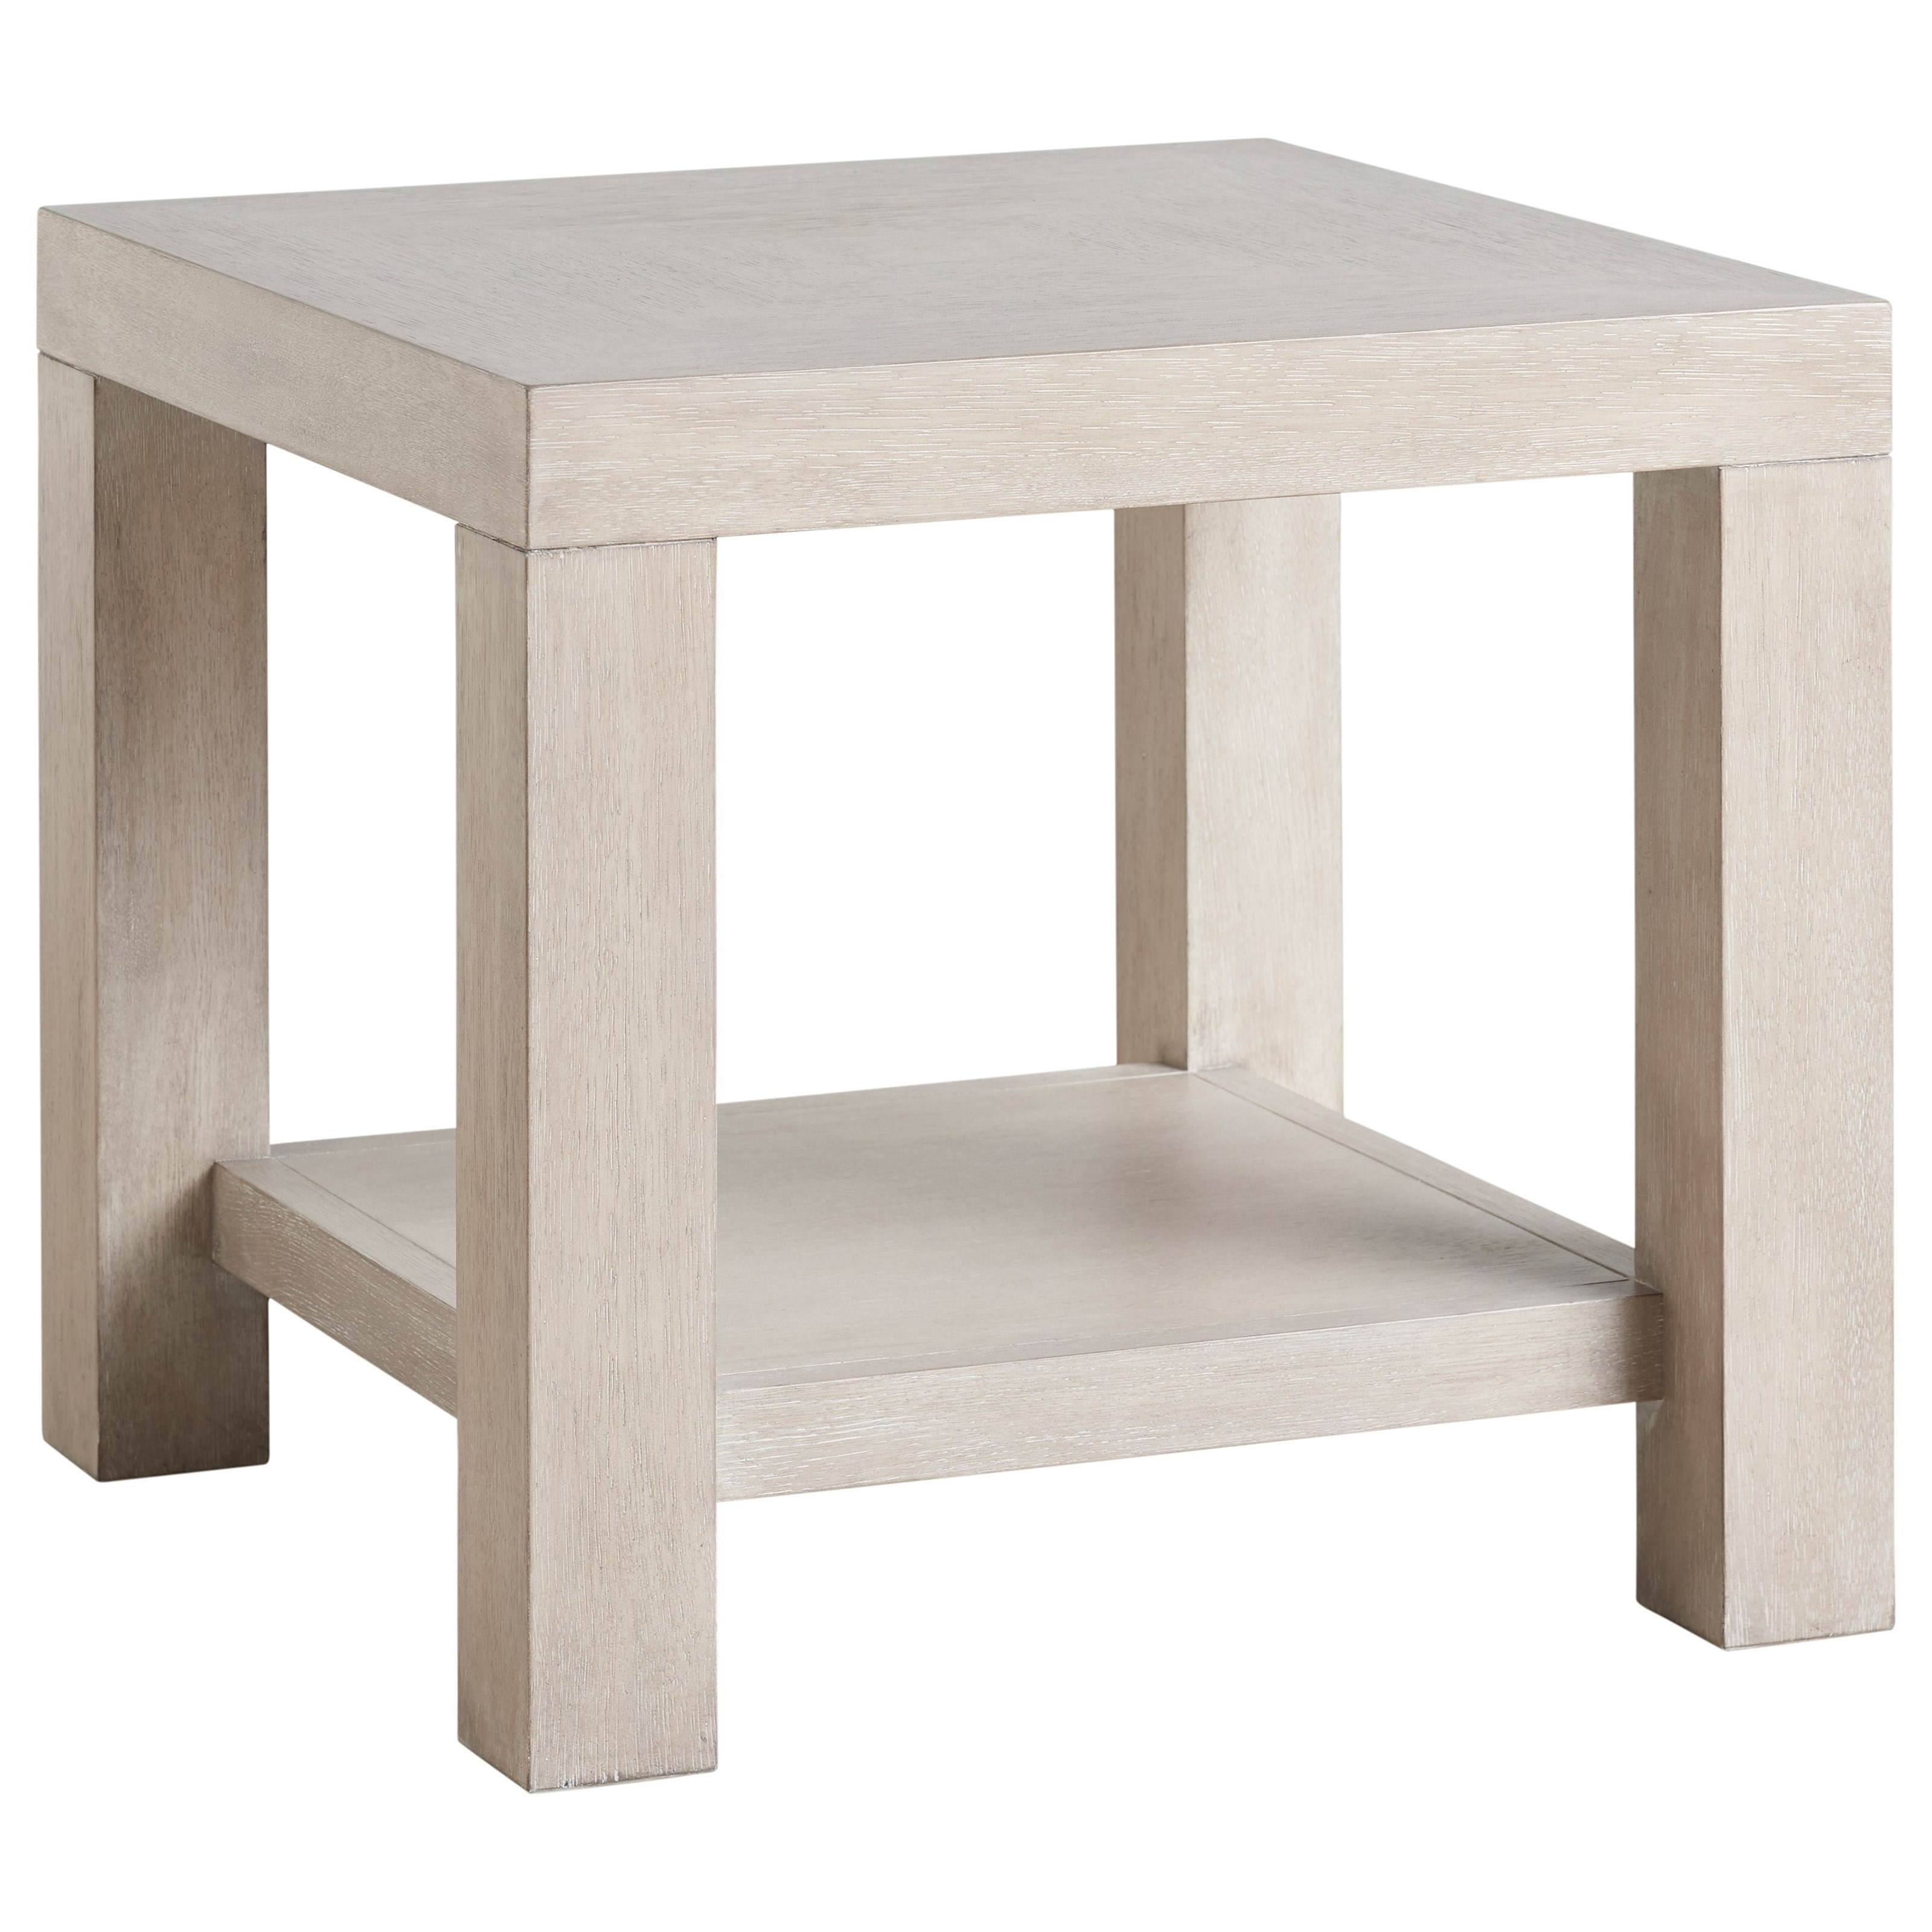 Malibu Surfrider End Table by Barclay Butera at Baer's Furniture